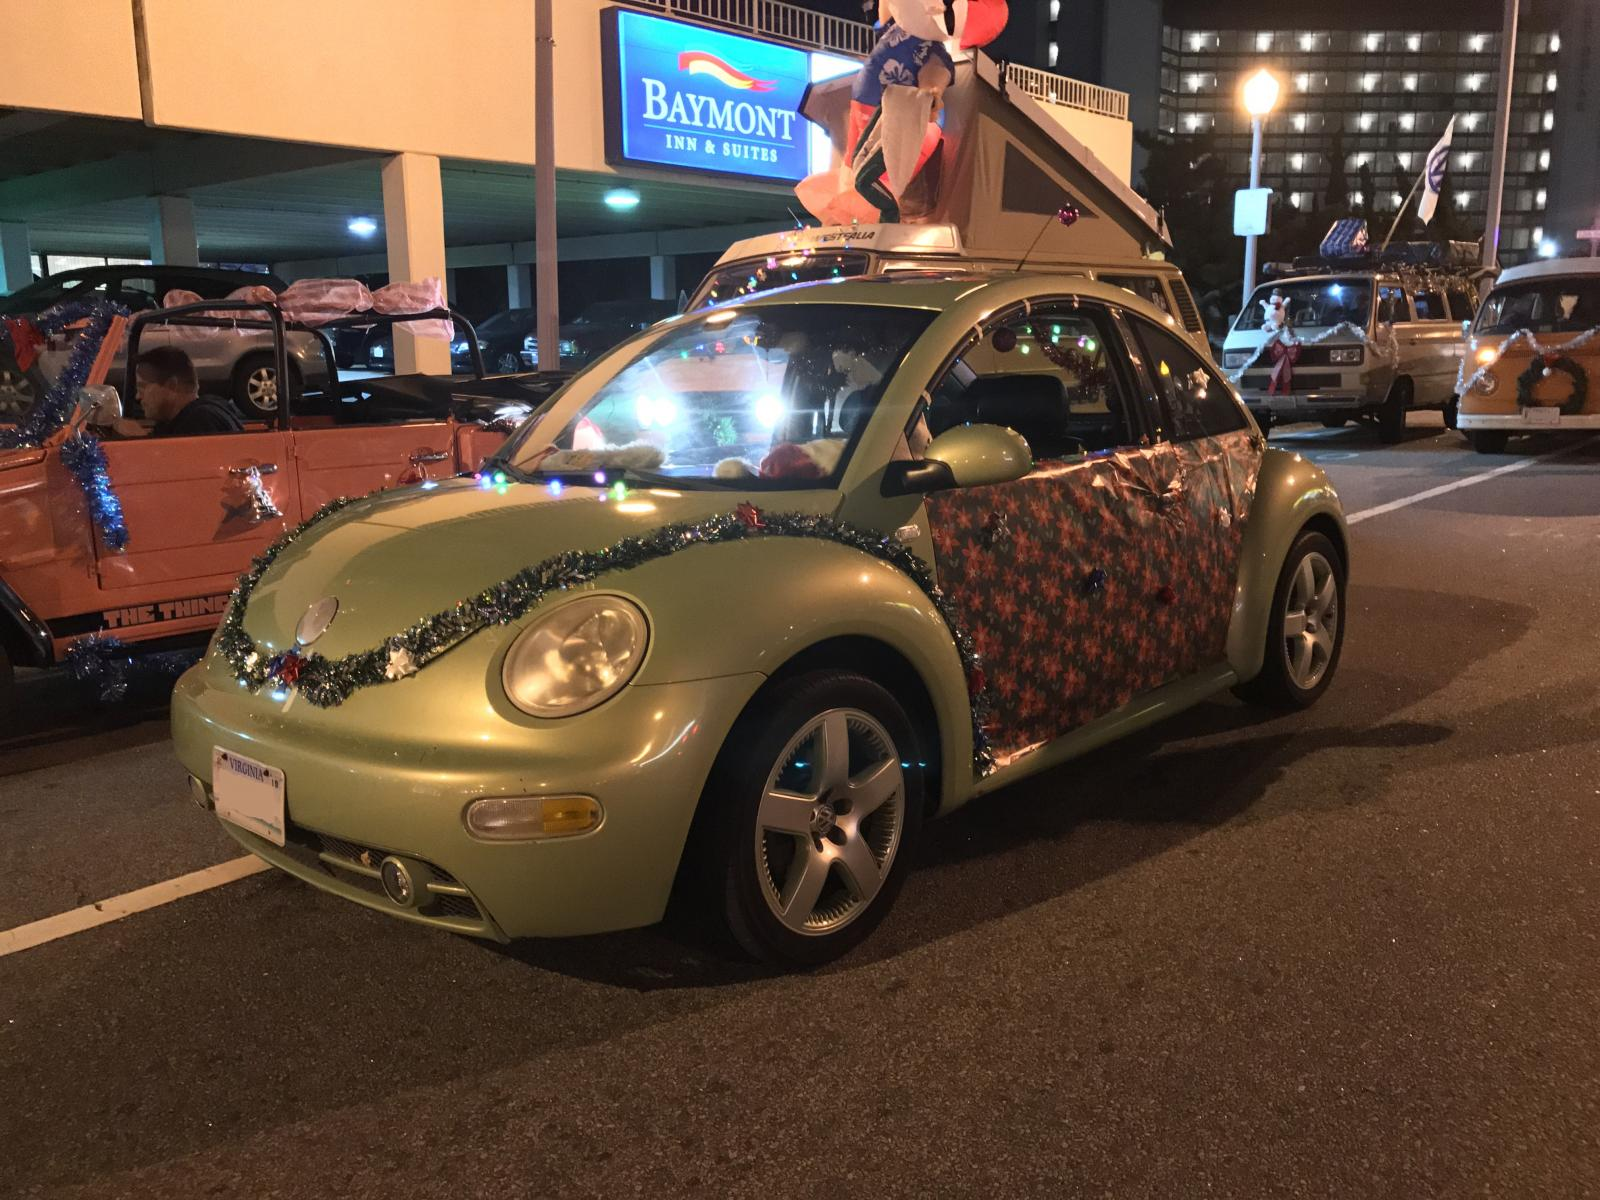 VW New Beetle Decorated for Parade